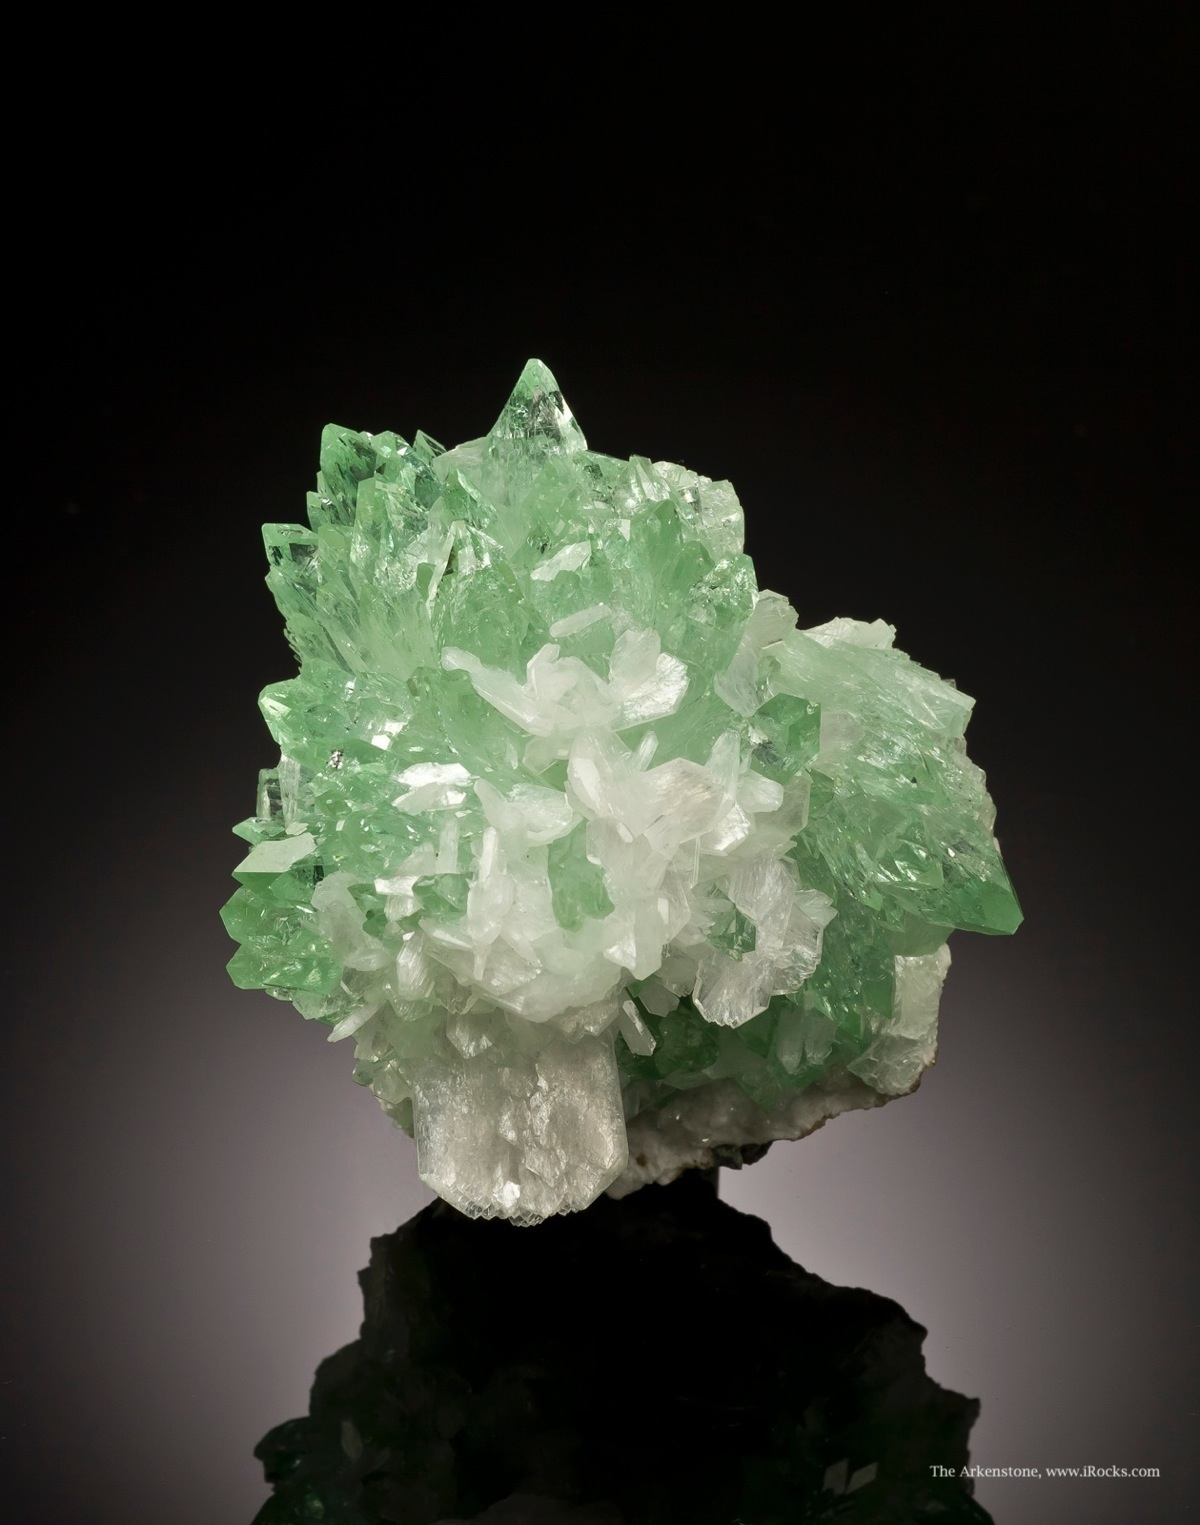 This particular style apophyllite combination distinct large crowd